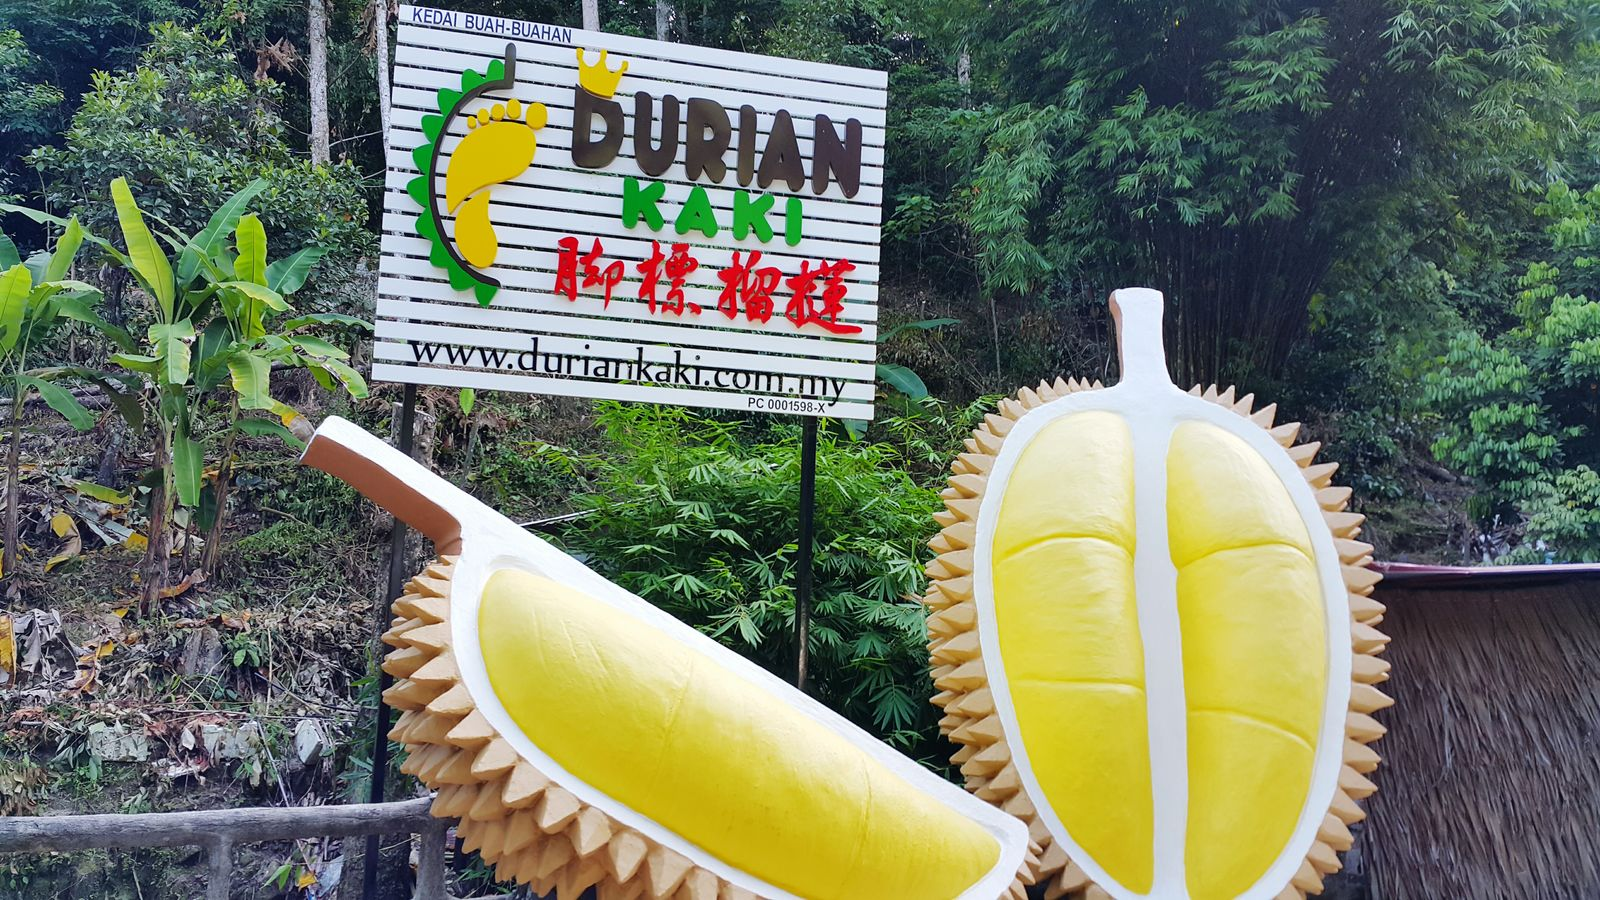 Durian Fruit Durian Fiesta Durians Shop Unique Architecture Naturephotography Green Color Outdoors Giant Structure Beautiful Colors Man Made Object